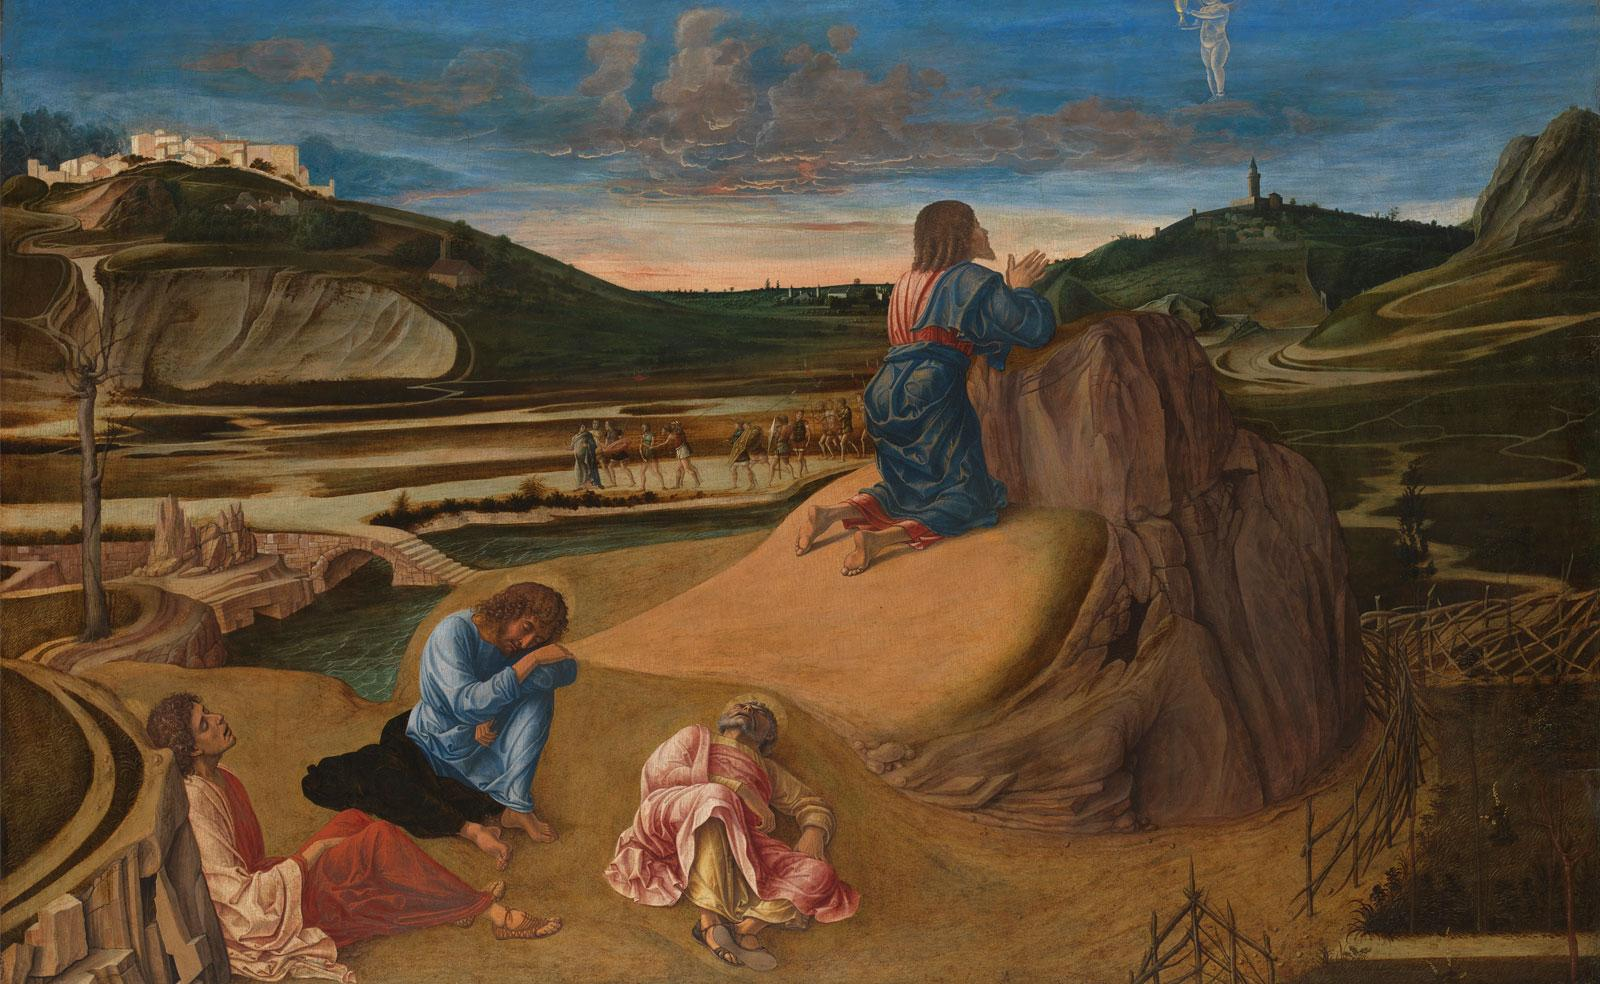 The Agony in the Garden by Giovanni Bellini.